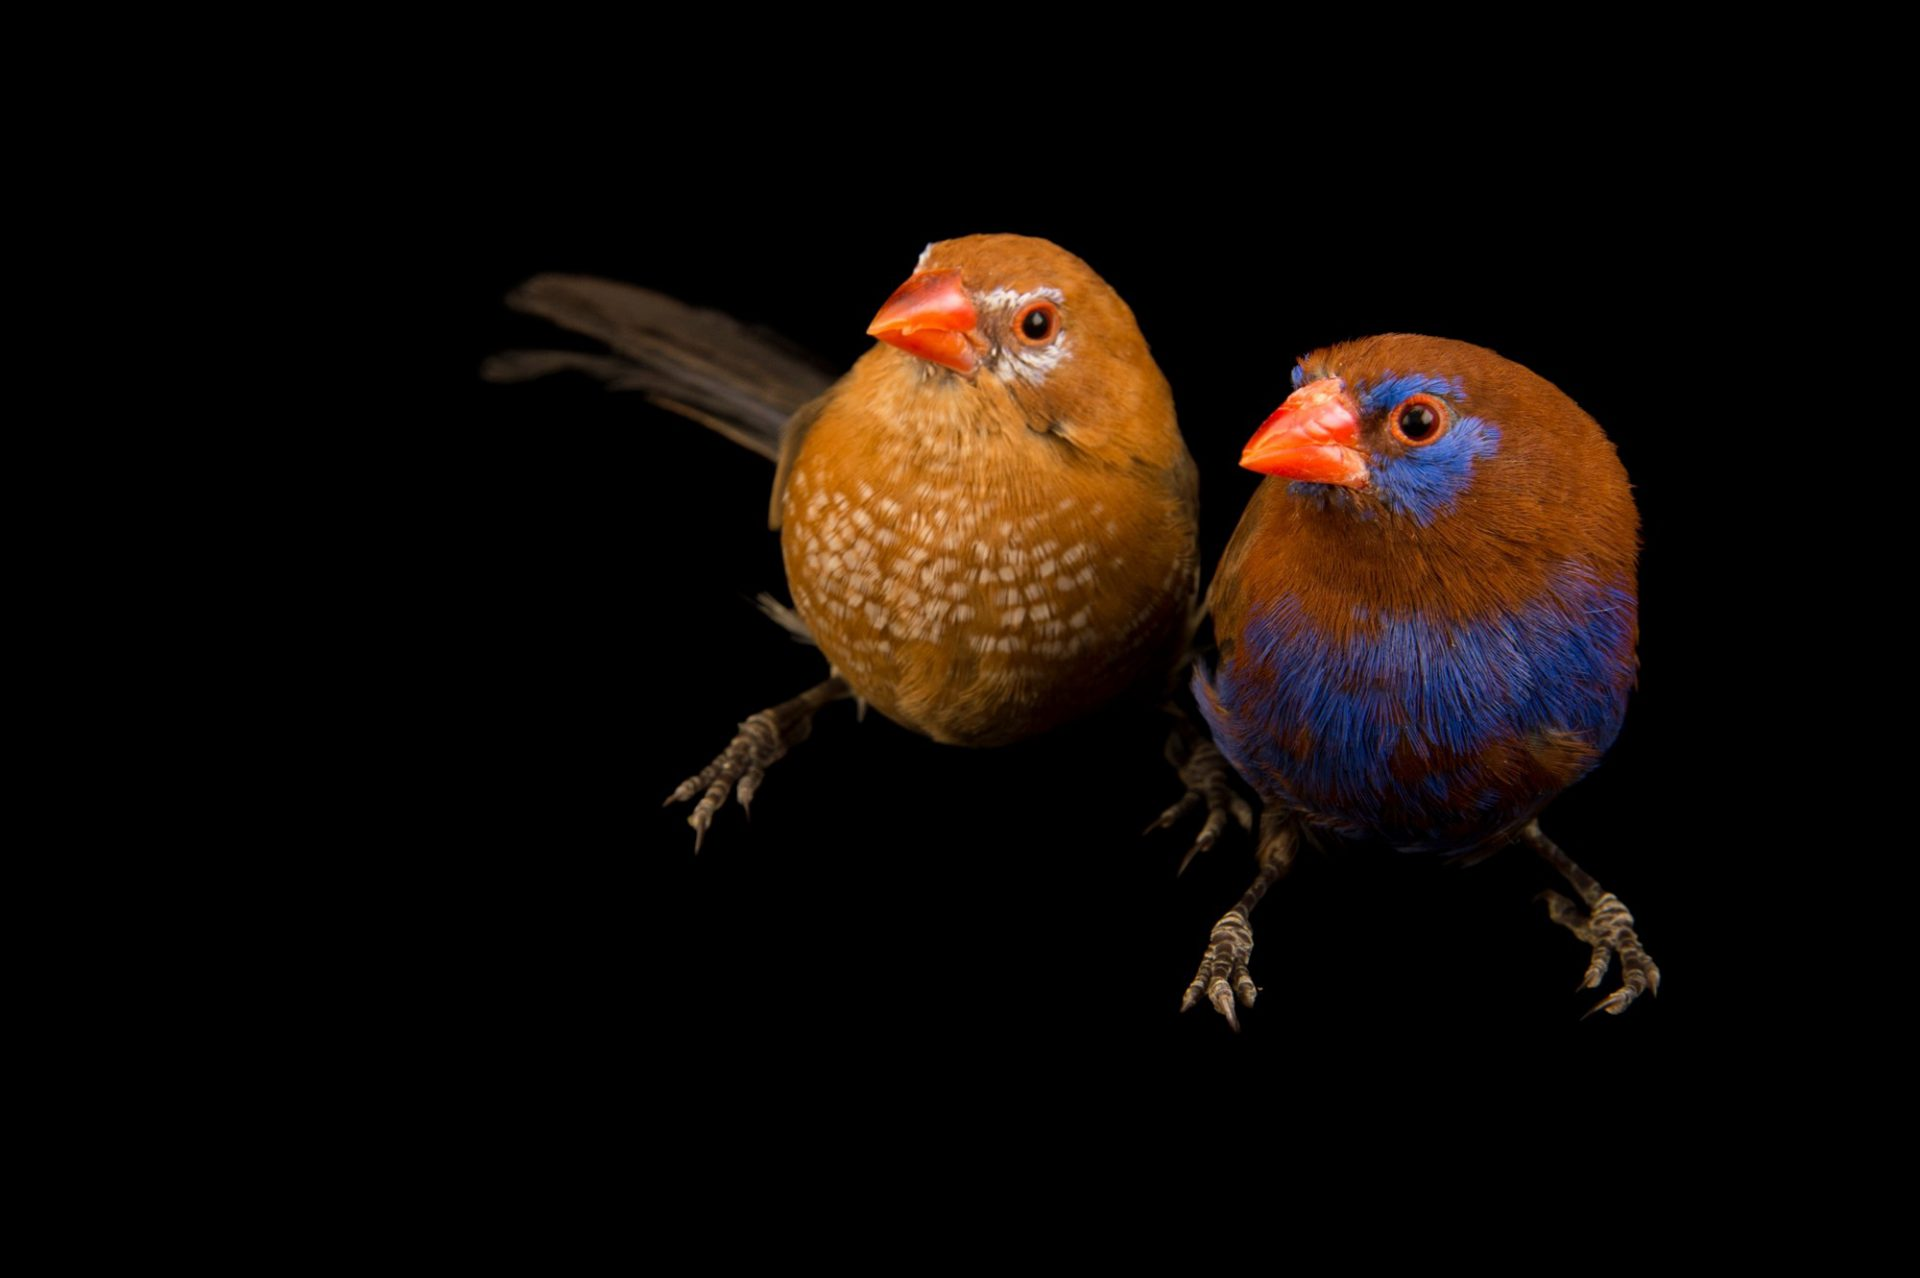 Photo: Two blue-bellied cordonbleu or purple grenadier (Granatina ianthinogaster) from a private collection in Choussy, France.